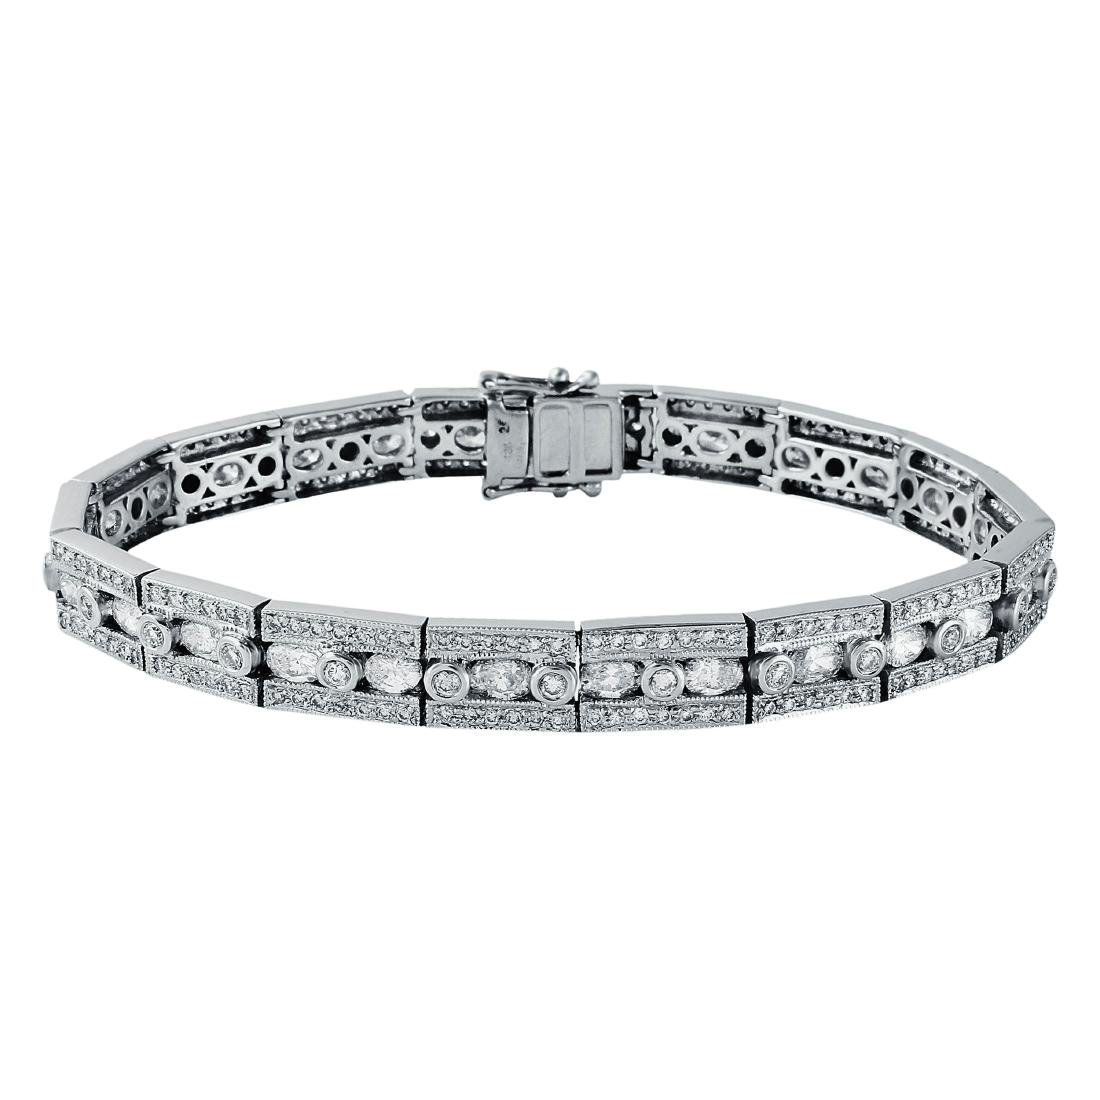 18KT White Gold Diamond Bracelet - 2